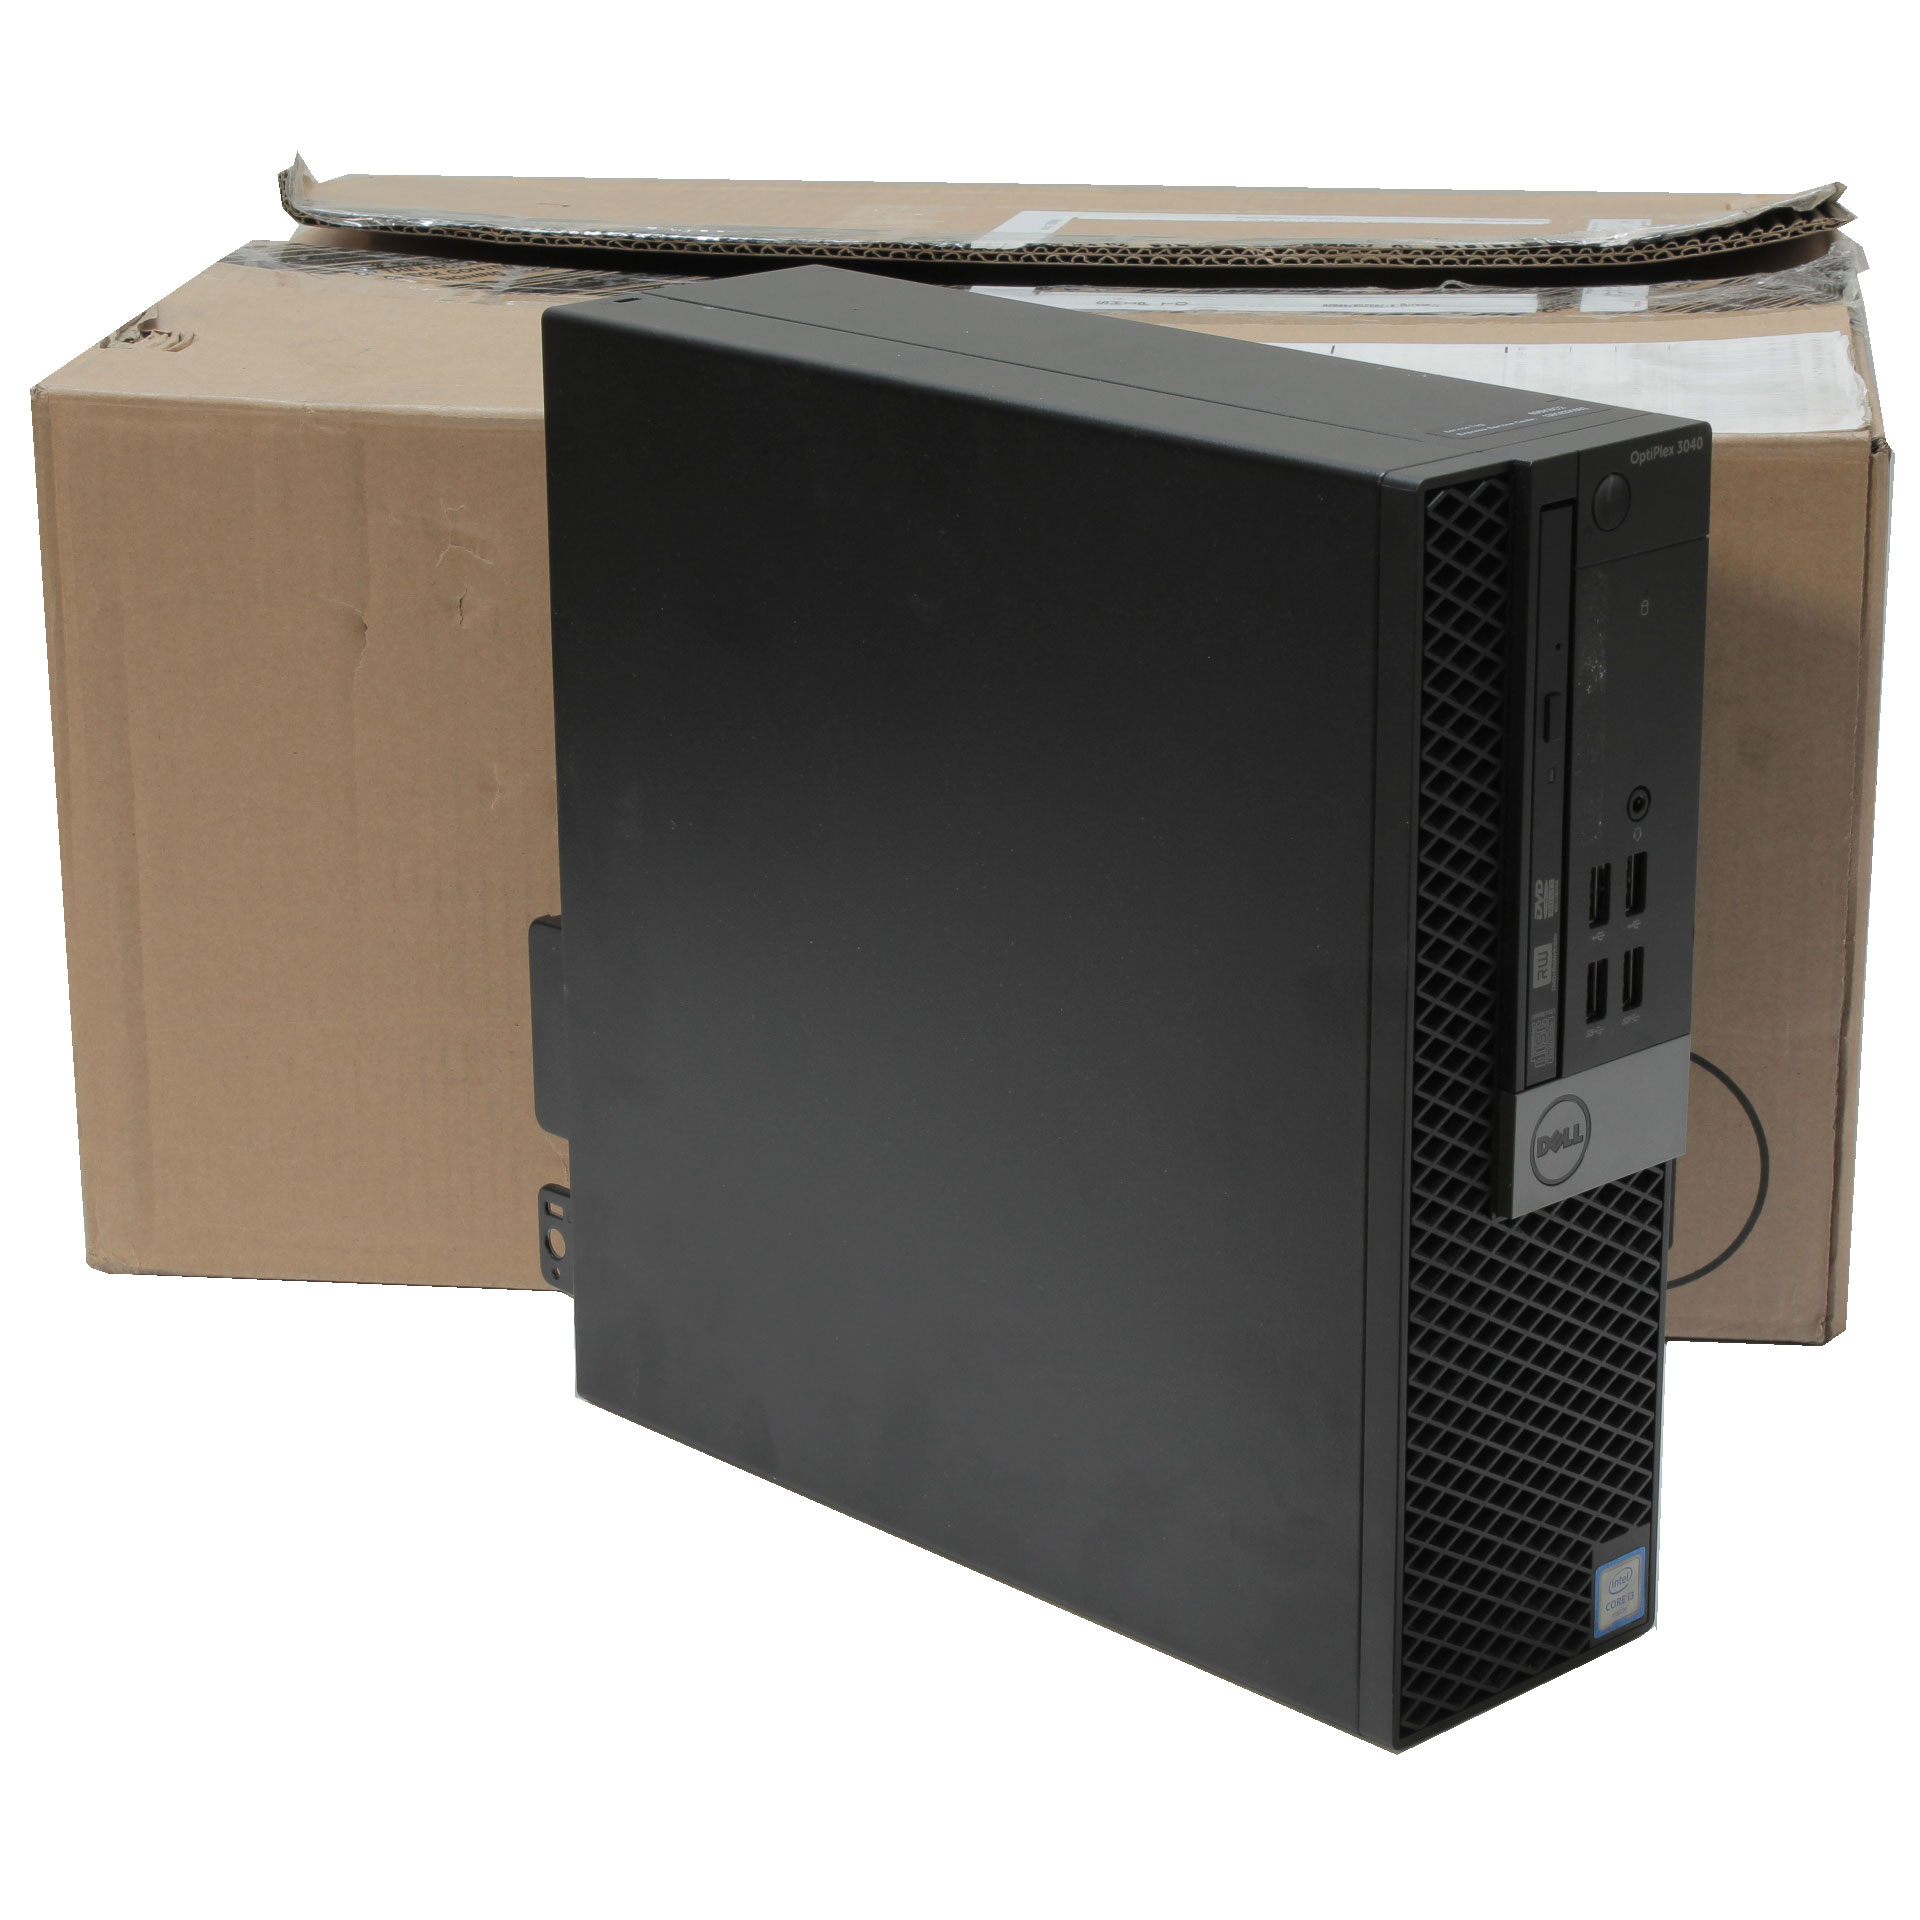 Dell OptiPlex 3040 9J44D i3 6100 3.7 GHz 4 GB 128 GB SSD